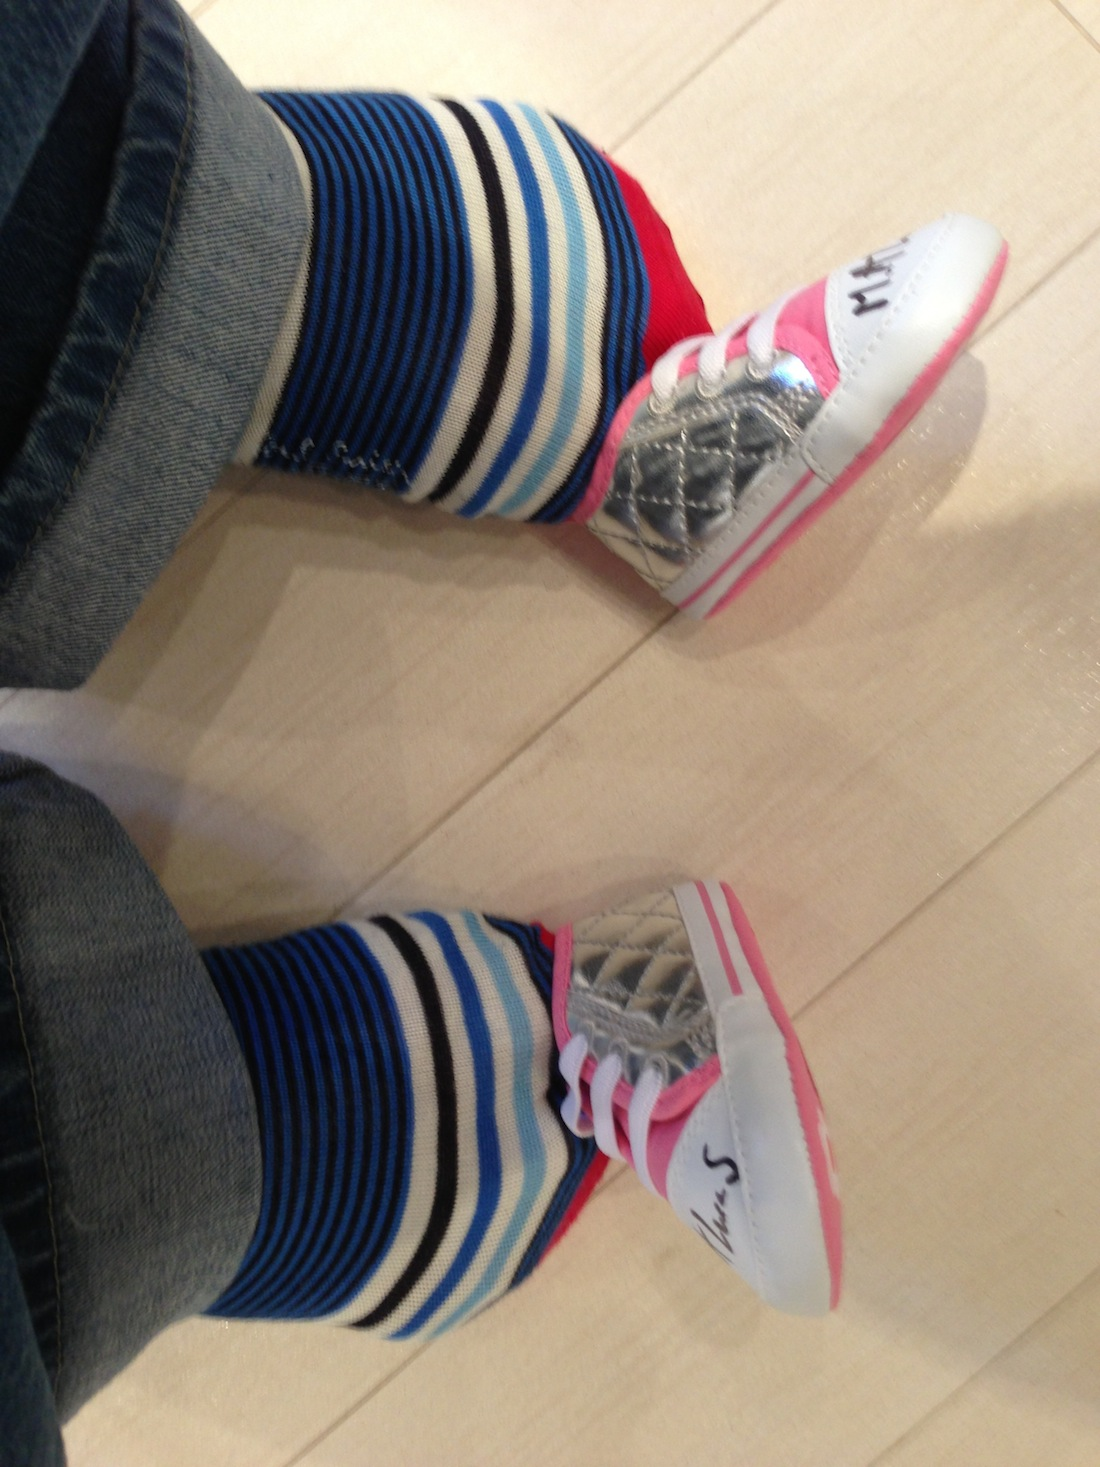 Matt has recently outgrown his shoes(!) We hope they go to a great new home!